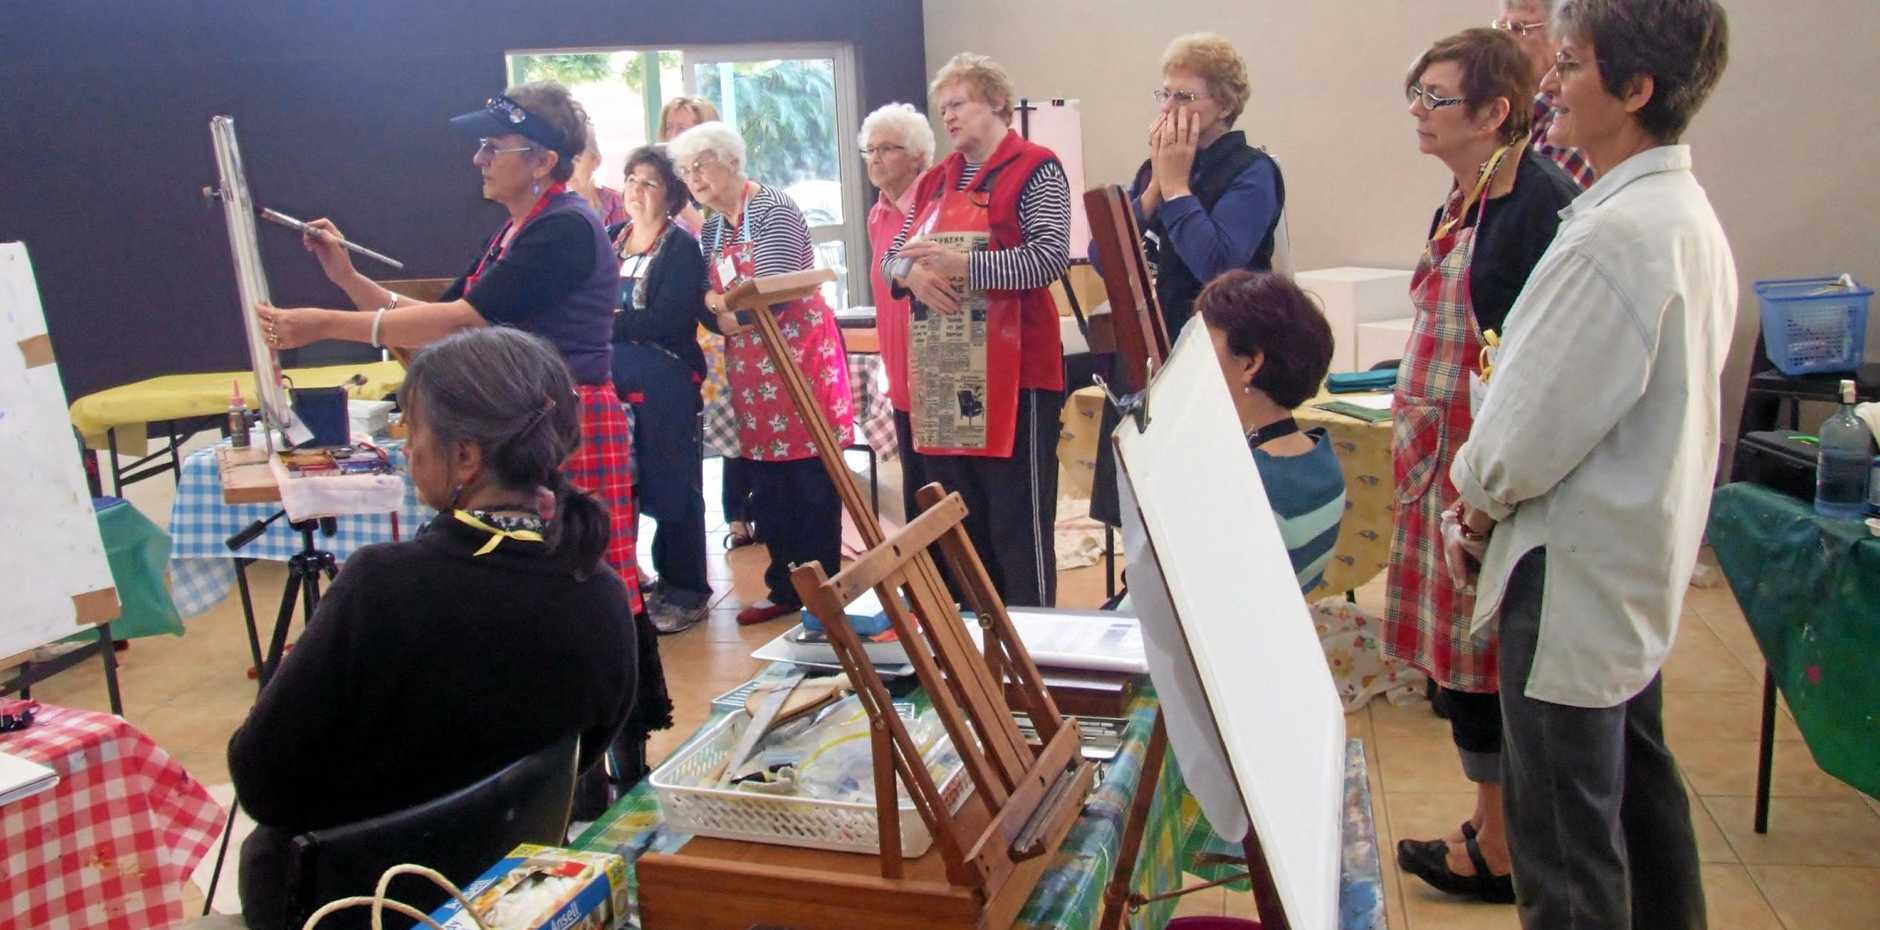 MASTERING ART: Penelope Gilbert Ng returns this winter for a one-day Pastel workshop at the Buderim Craft Cottage.